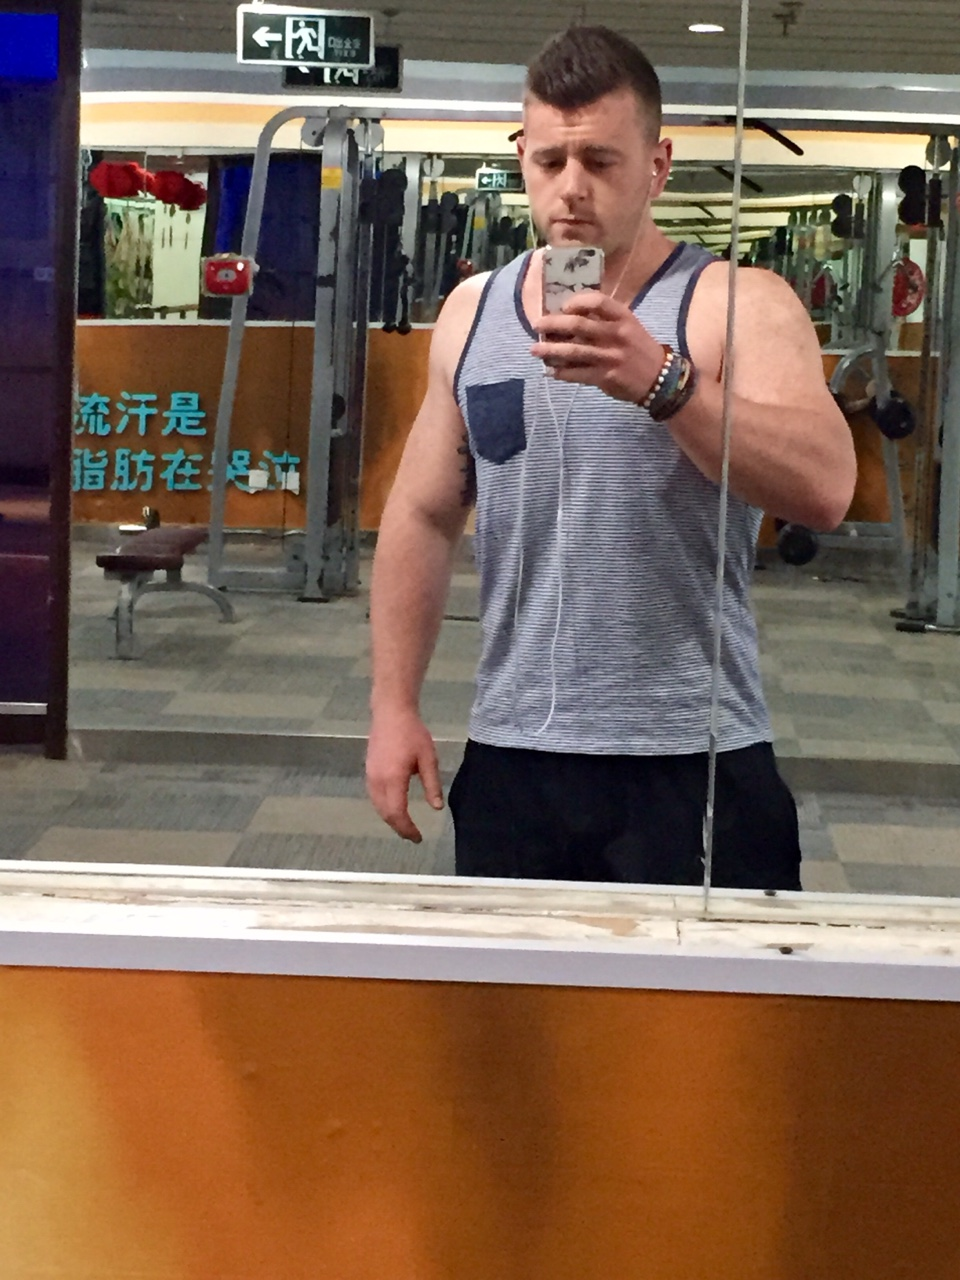 Dropped from 102kg to 93.5kg in less than 2 months. Amazing what a little cardio and salad will do for the body. Bought this tank top yesterday and realized it was too small as soon I put it on.